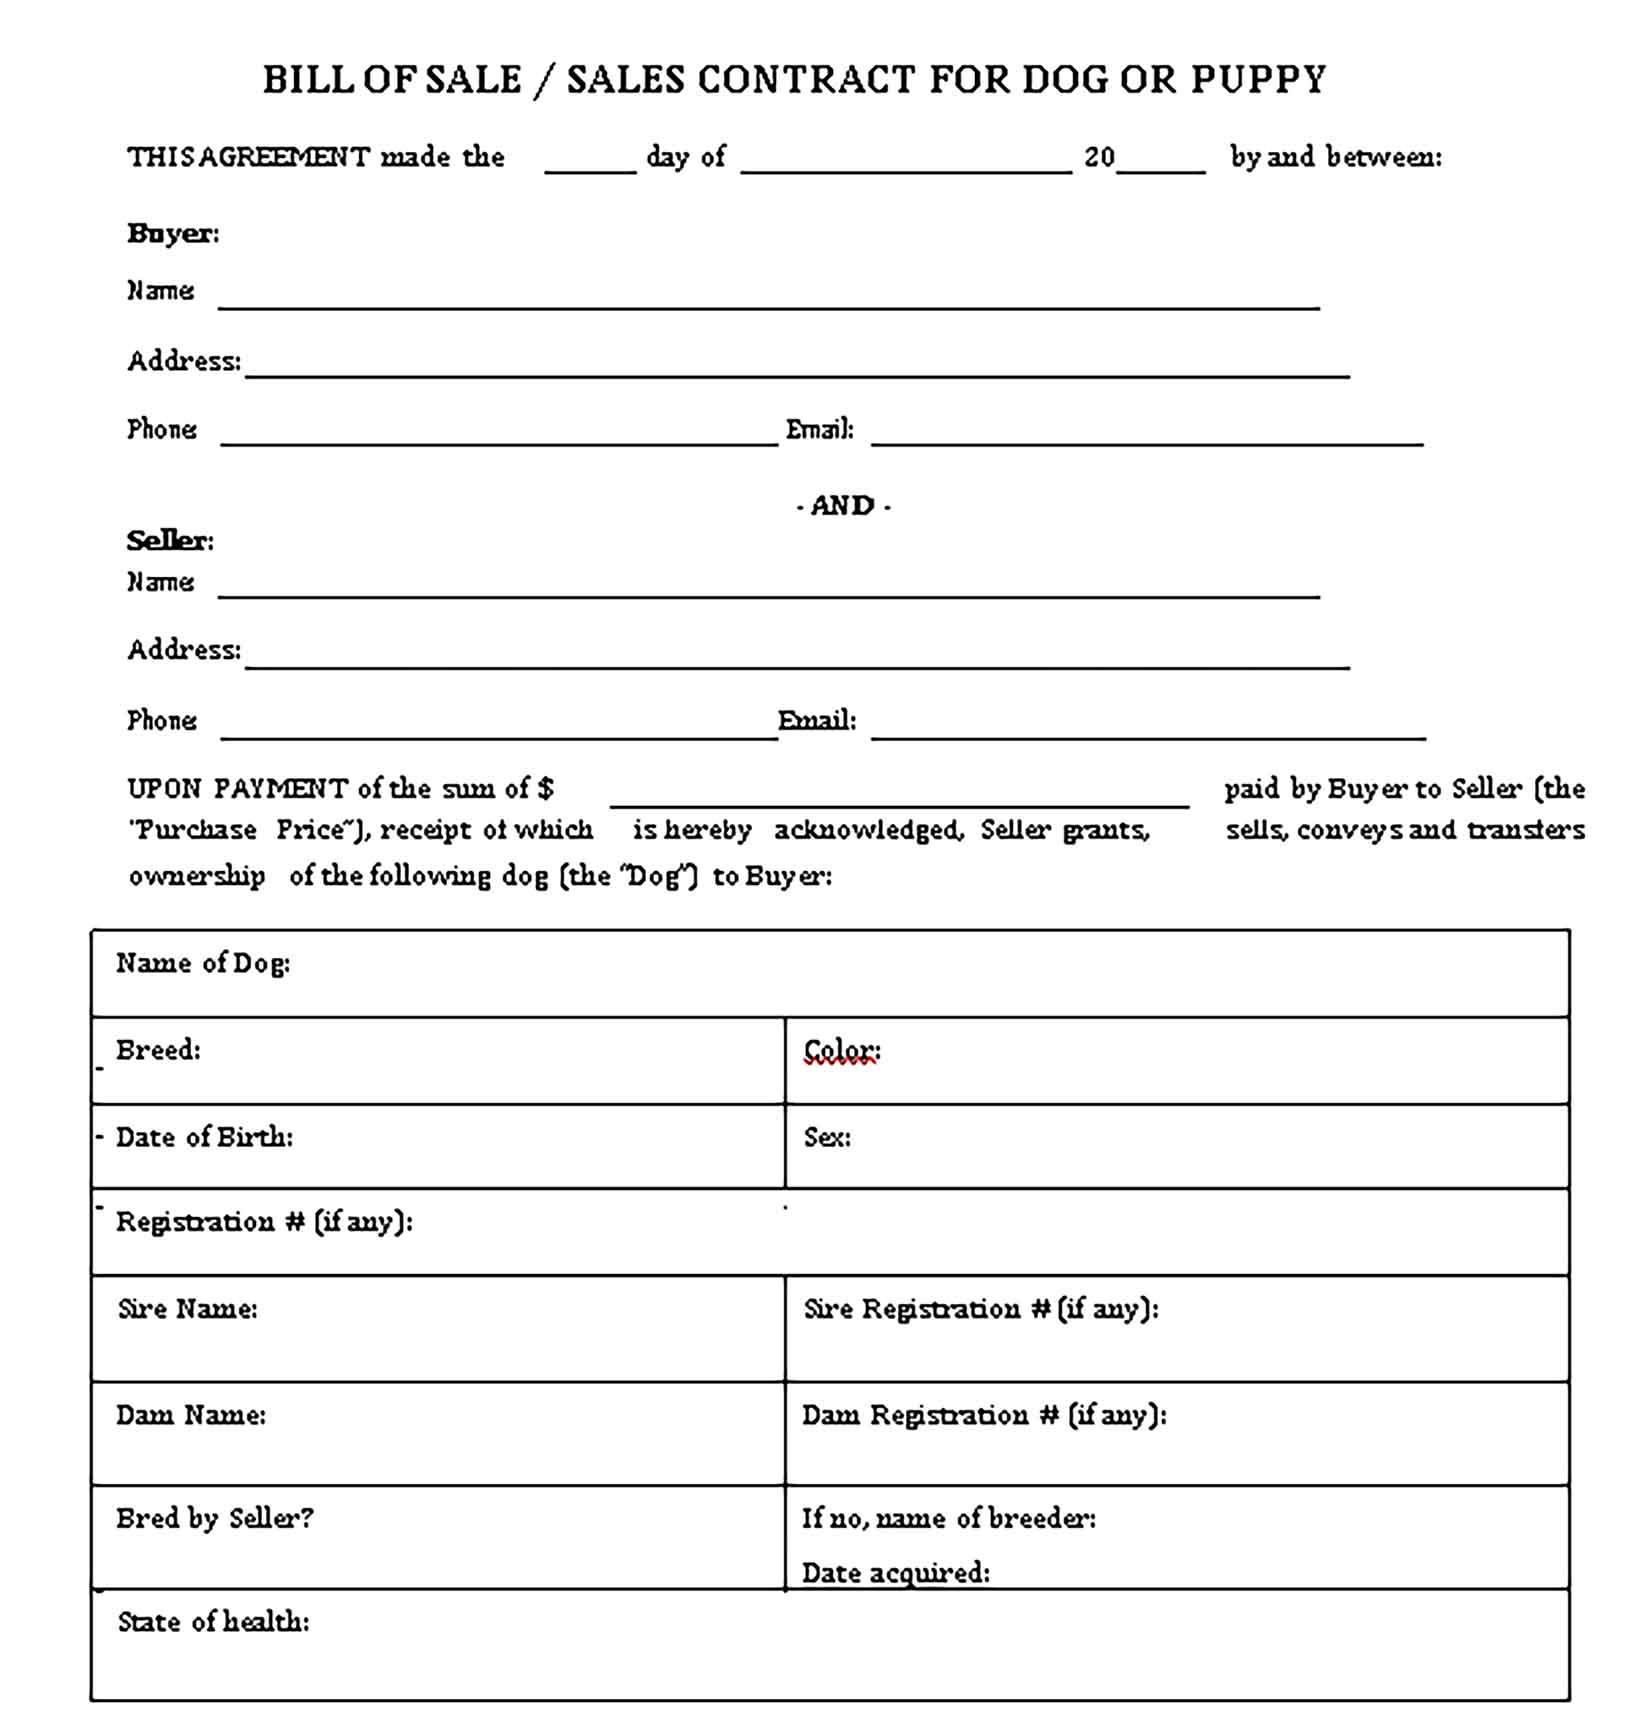 Sample dog bill of sale free Templates